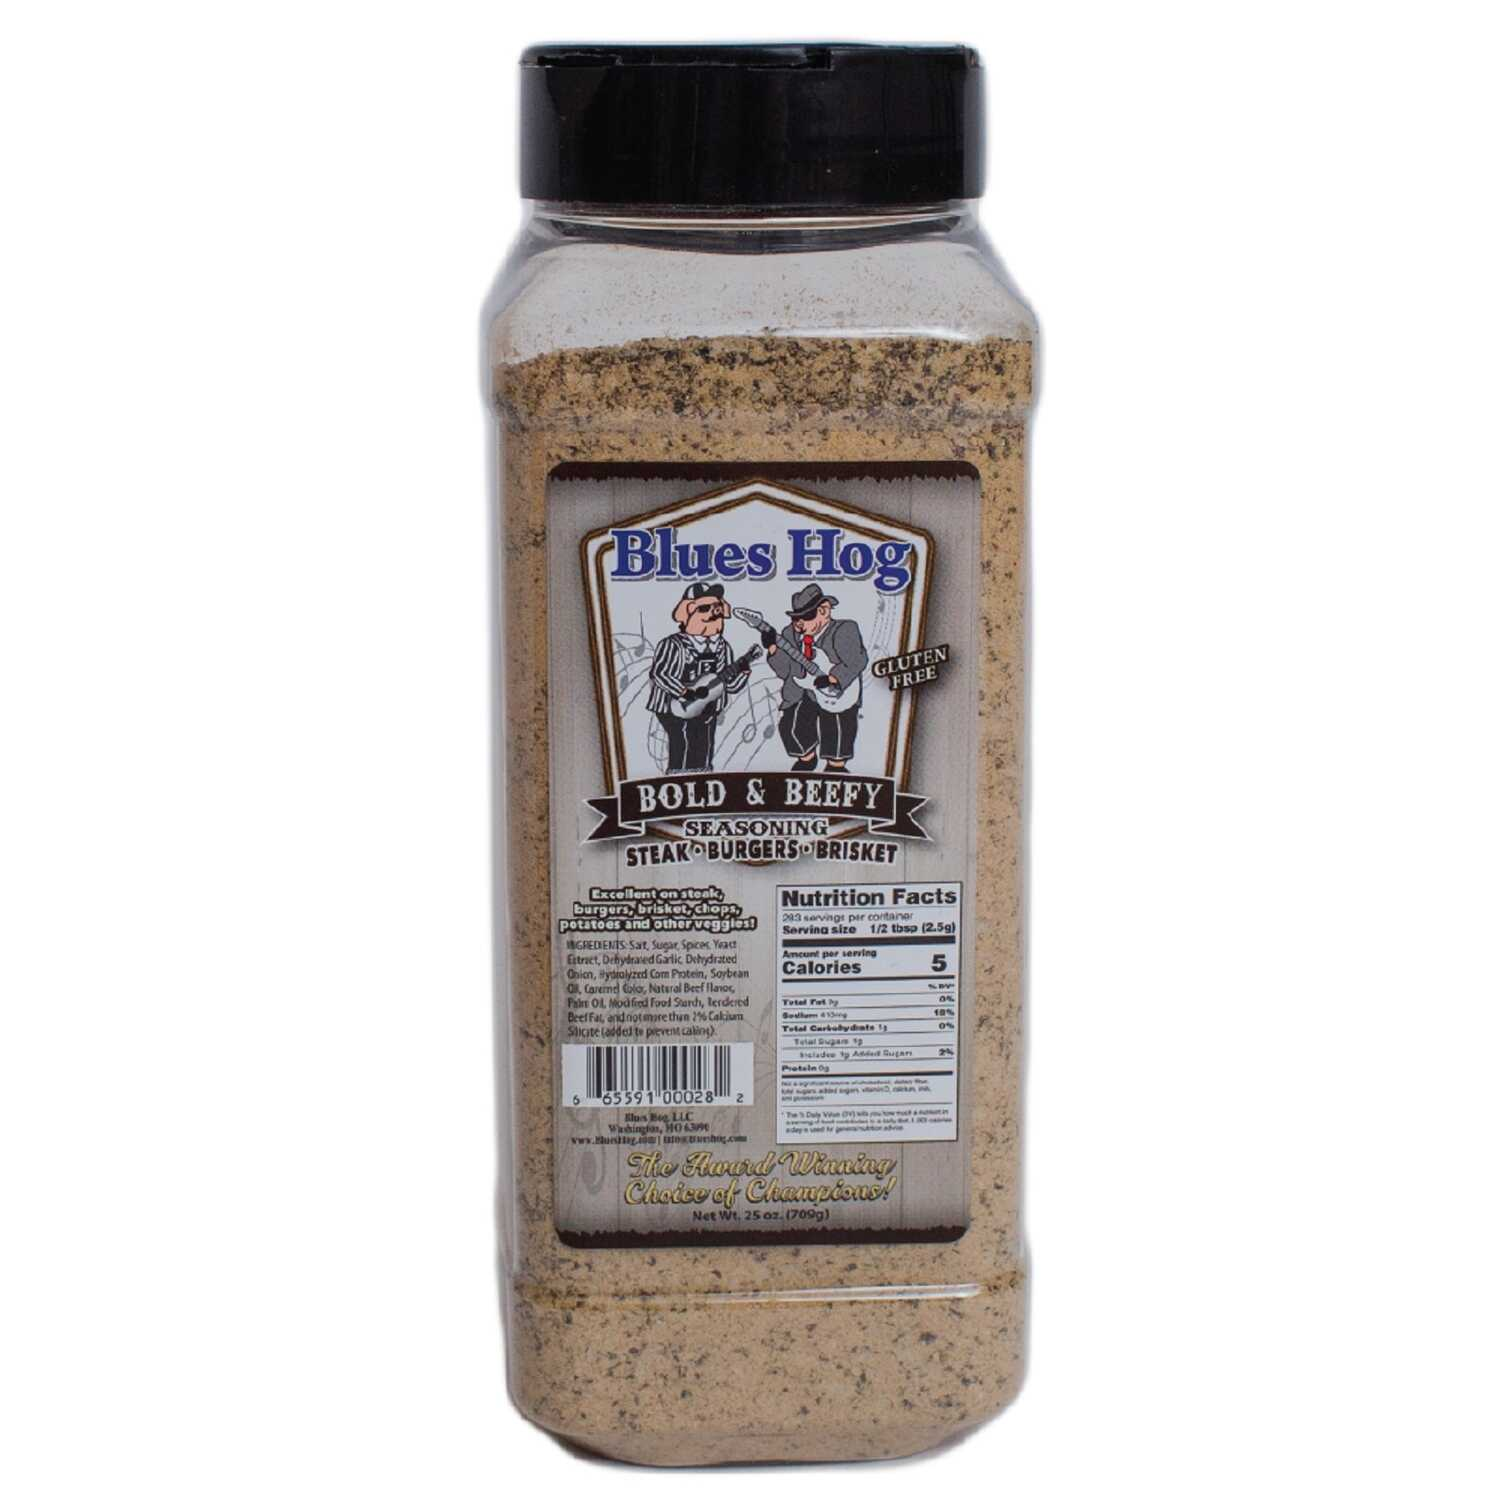 Blues Hog  Bold & Beefy  Seasoning Rub  25 oz.